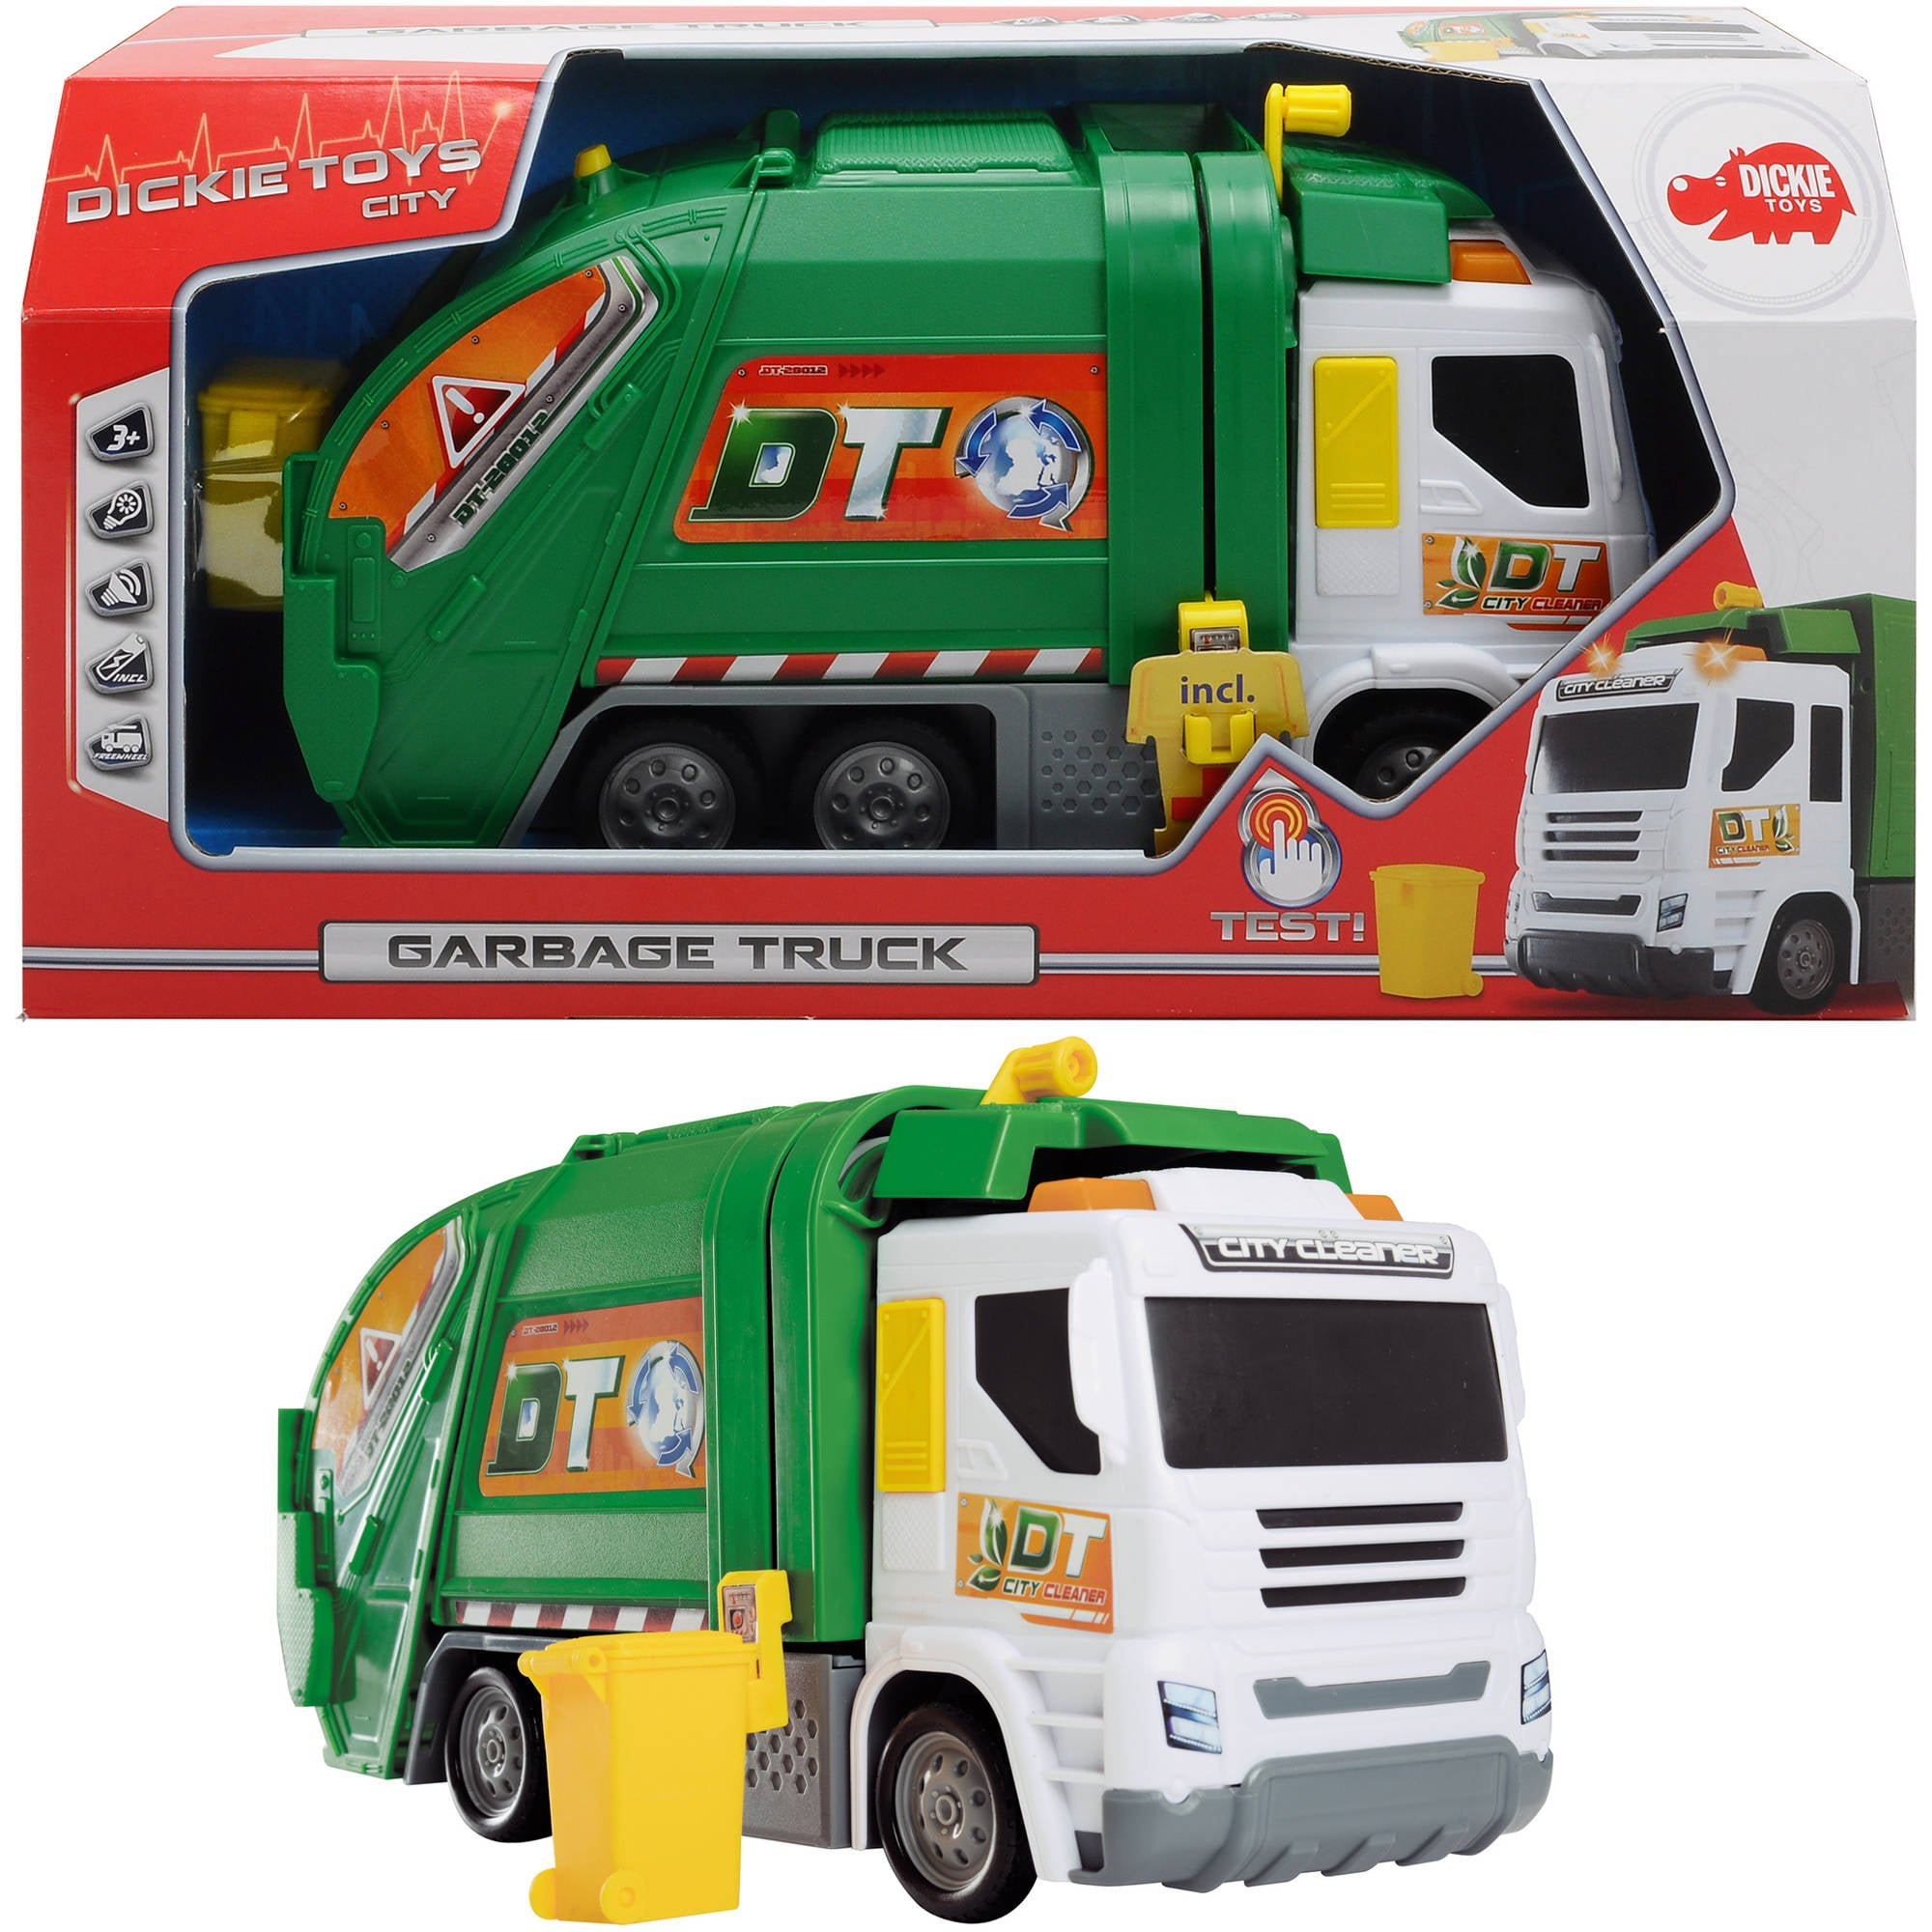 Get ready garbage truck coloring book - Get Ready Garbage Truck Coloring Book 49